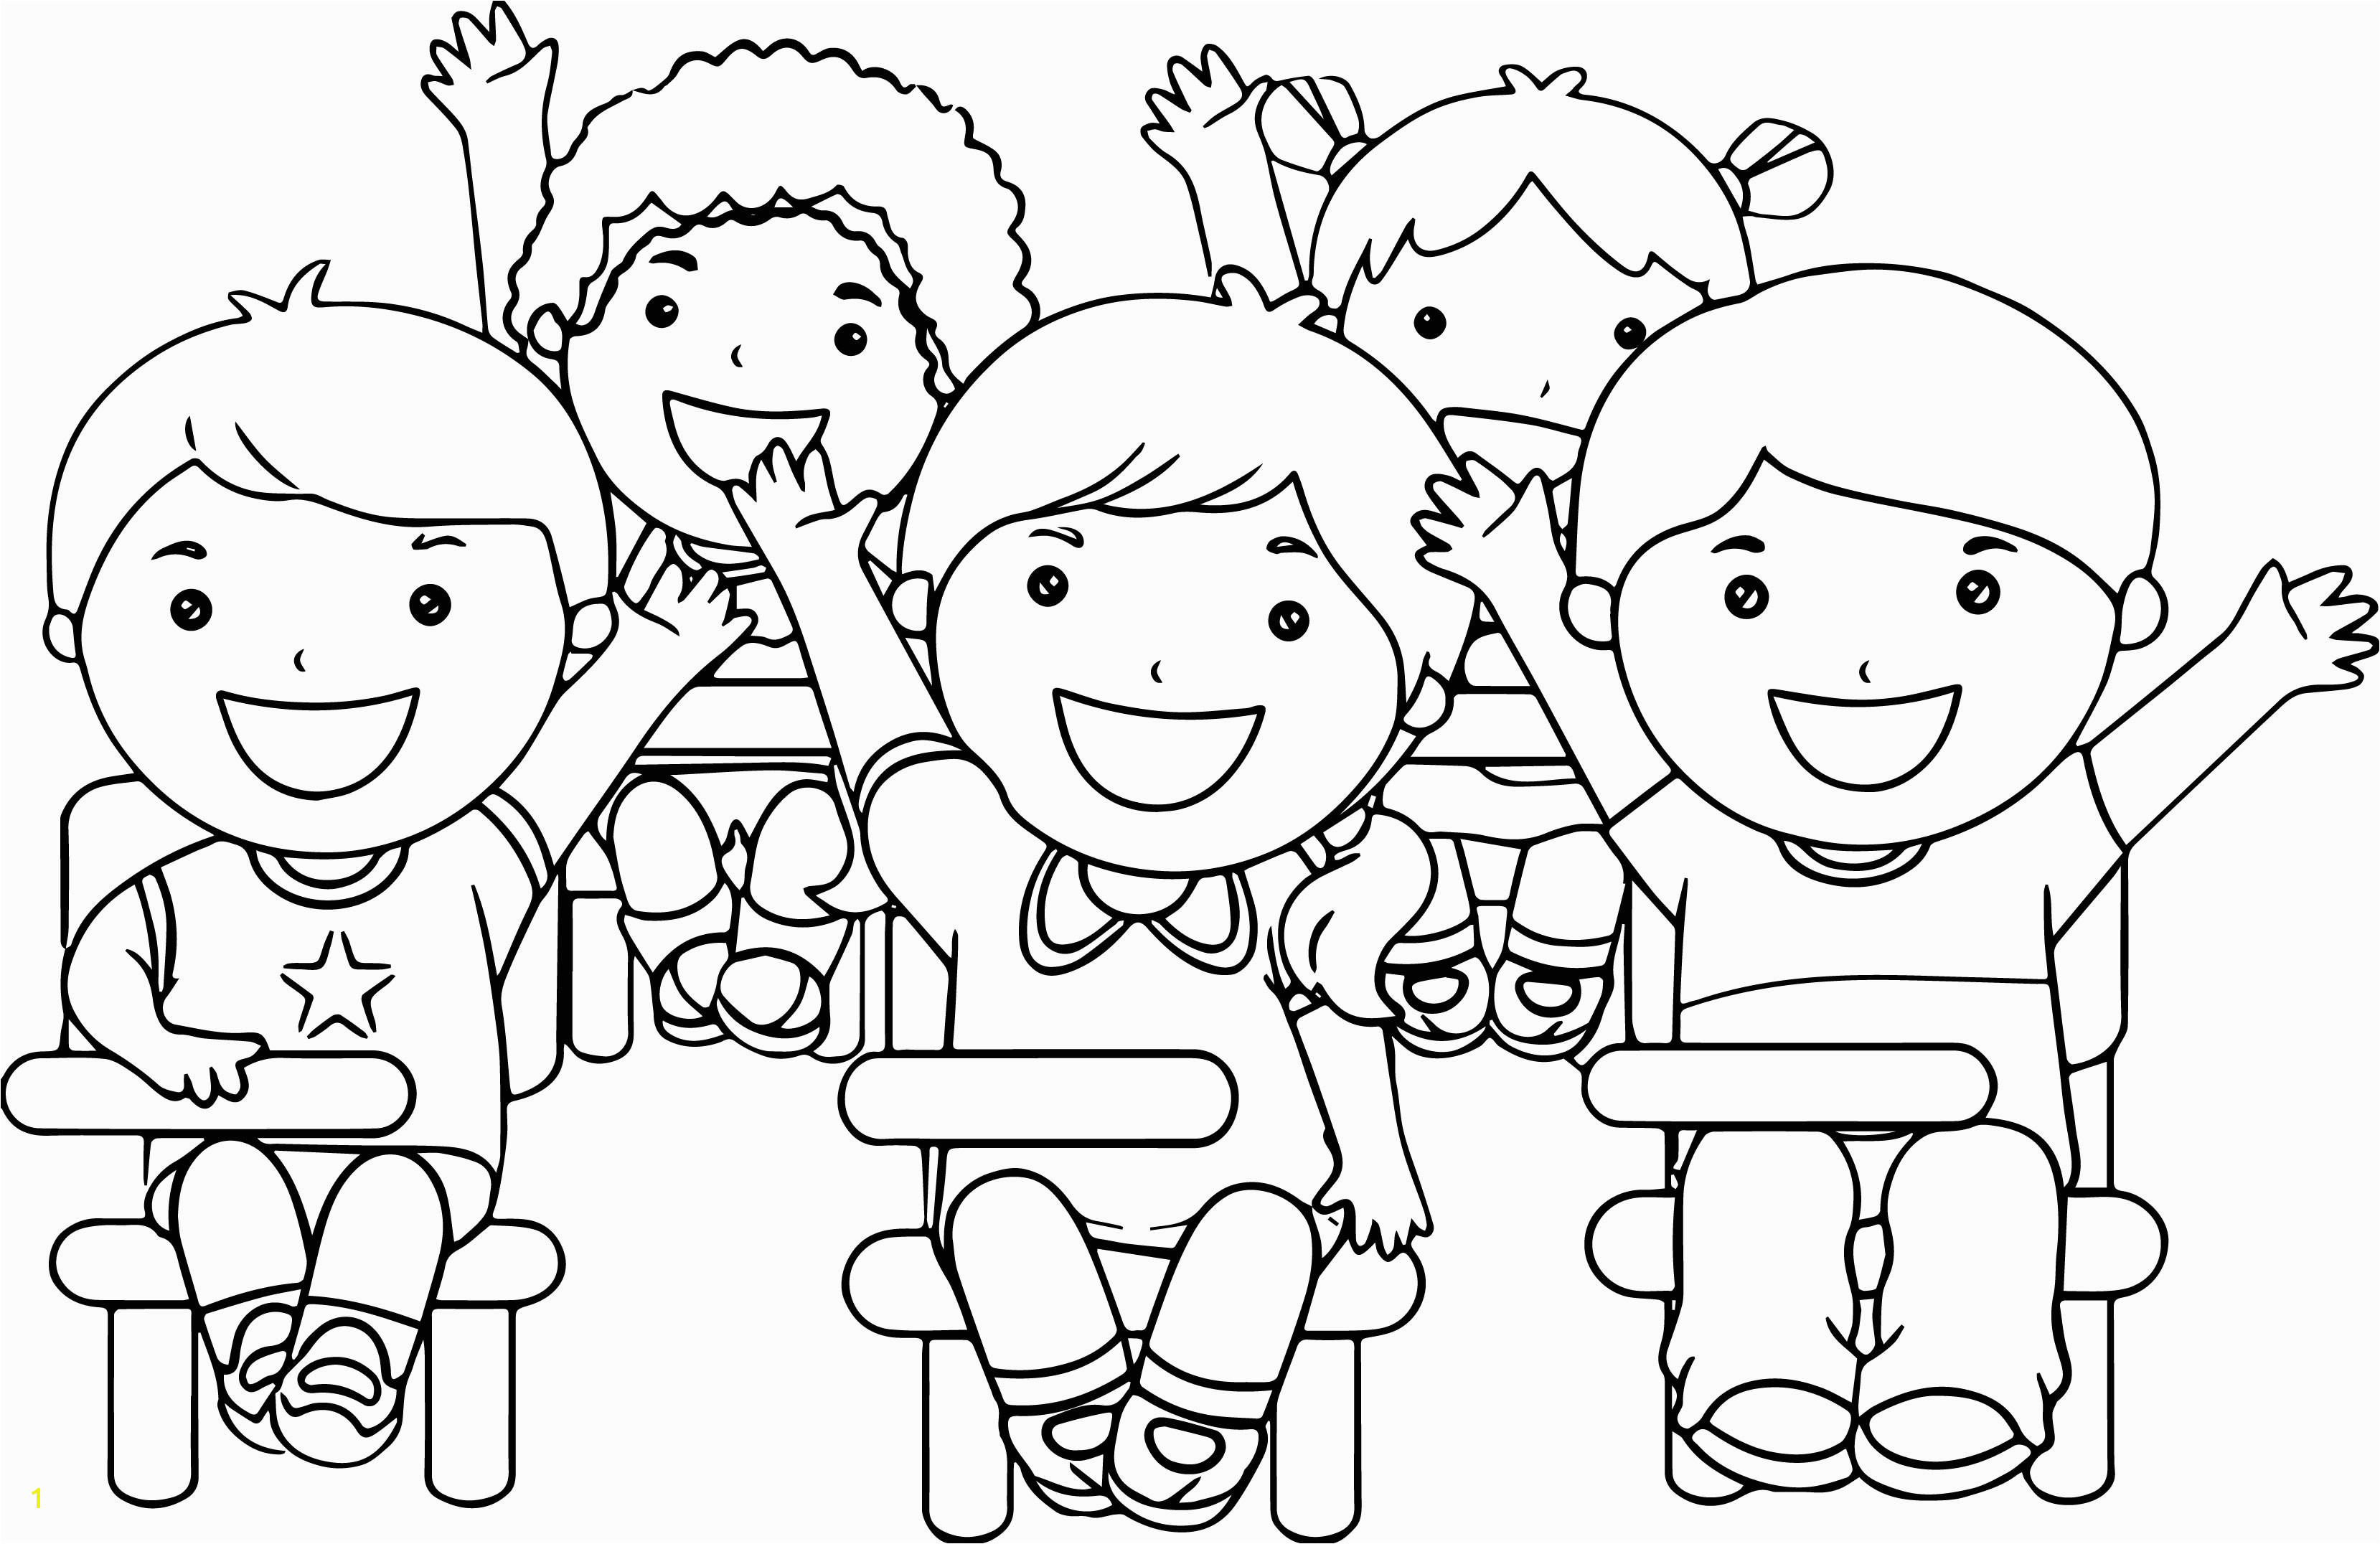 The Boxcar Children Coloring Pages attractive Childrens Coloring Pages Flowers Pattern Ways to Use